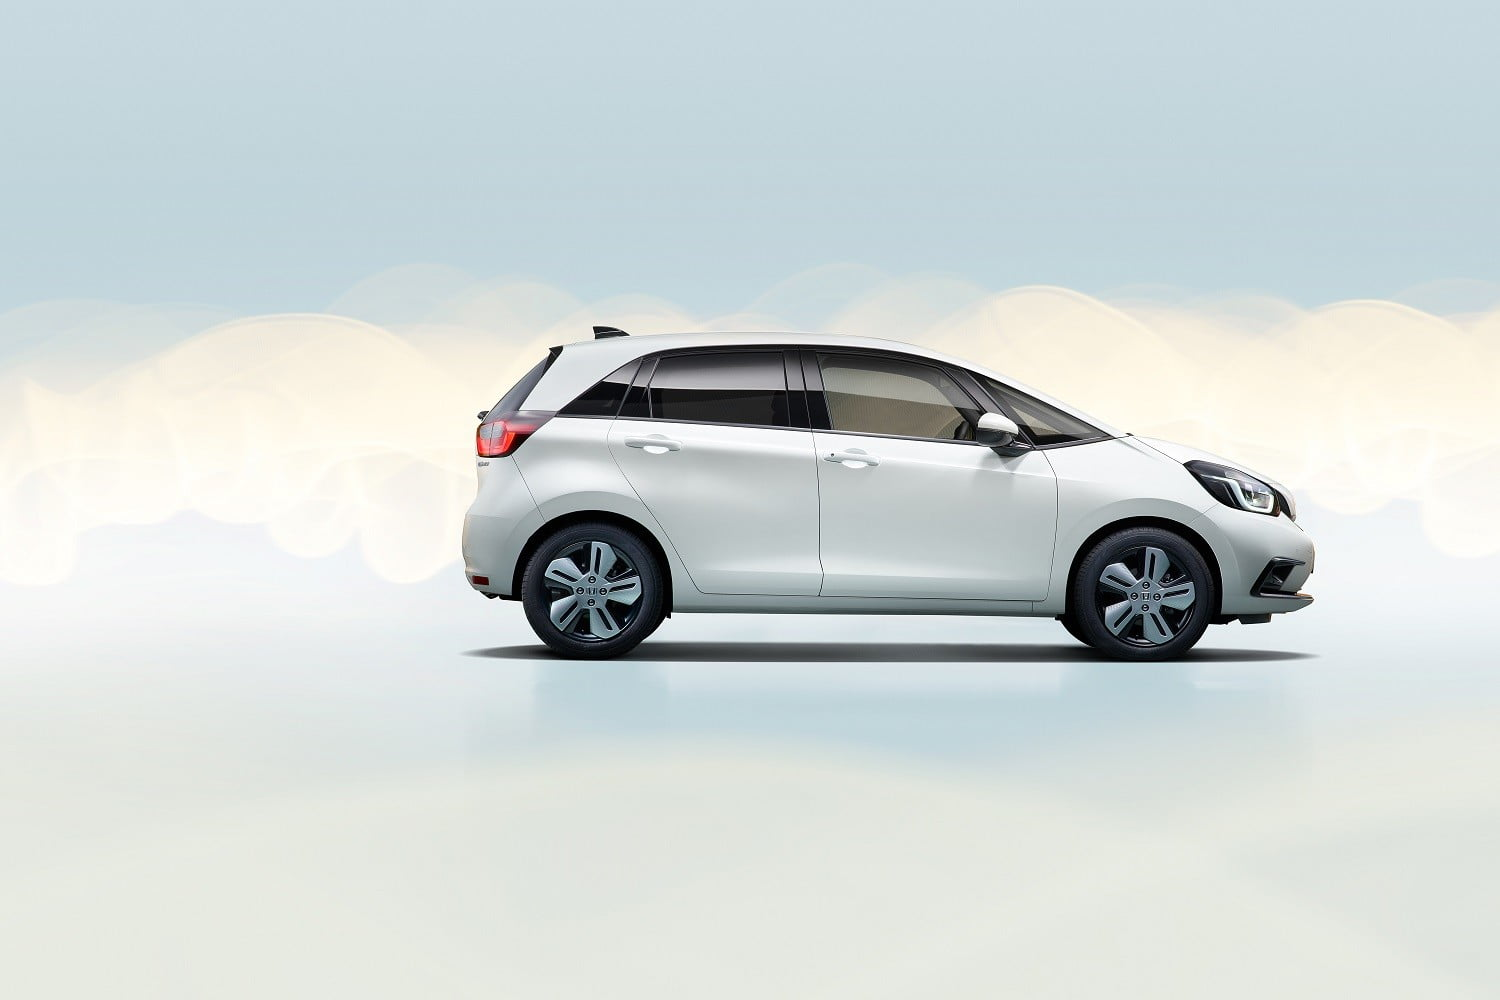 2020 honda fit hybrid unveiled at the 2019 tokyo motor show jazz 4